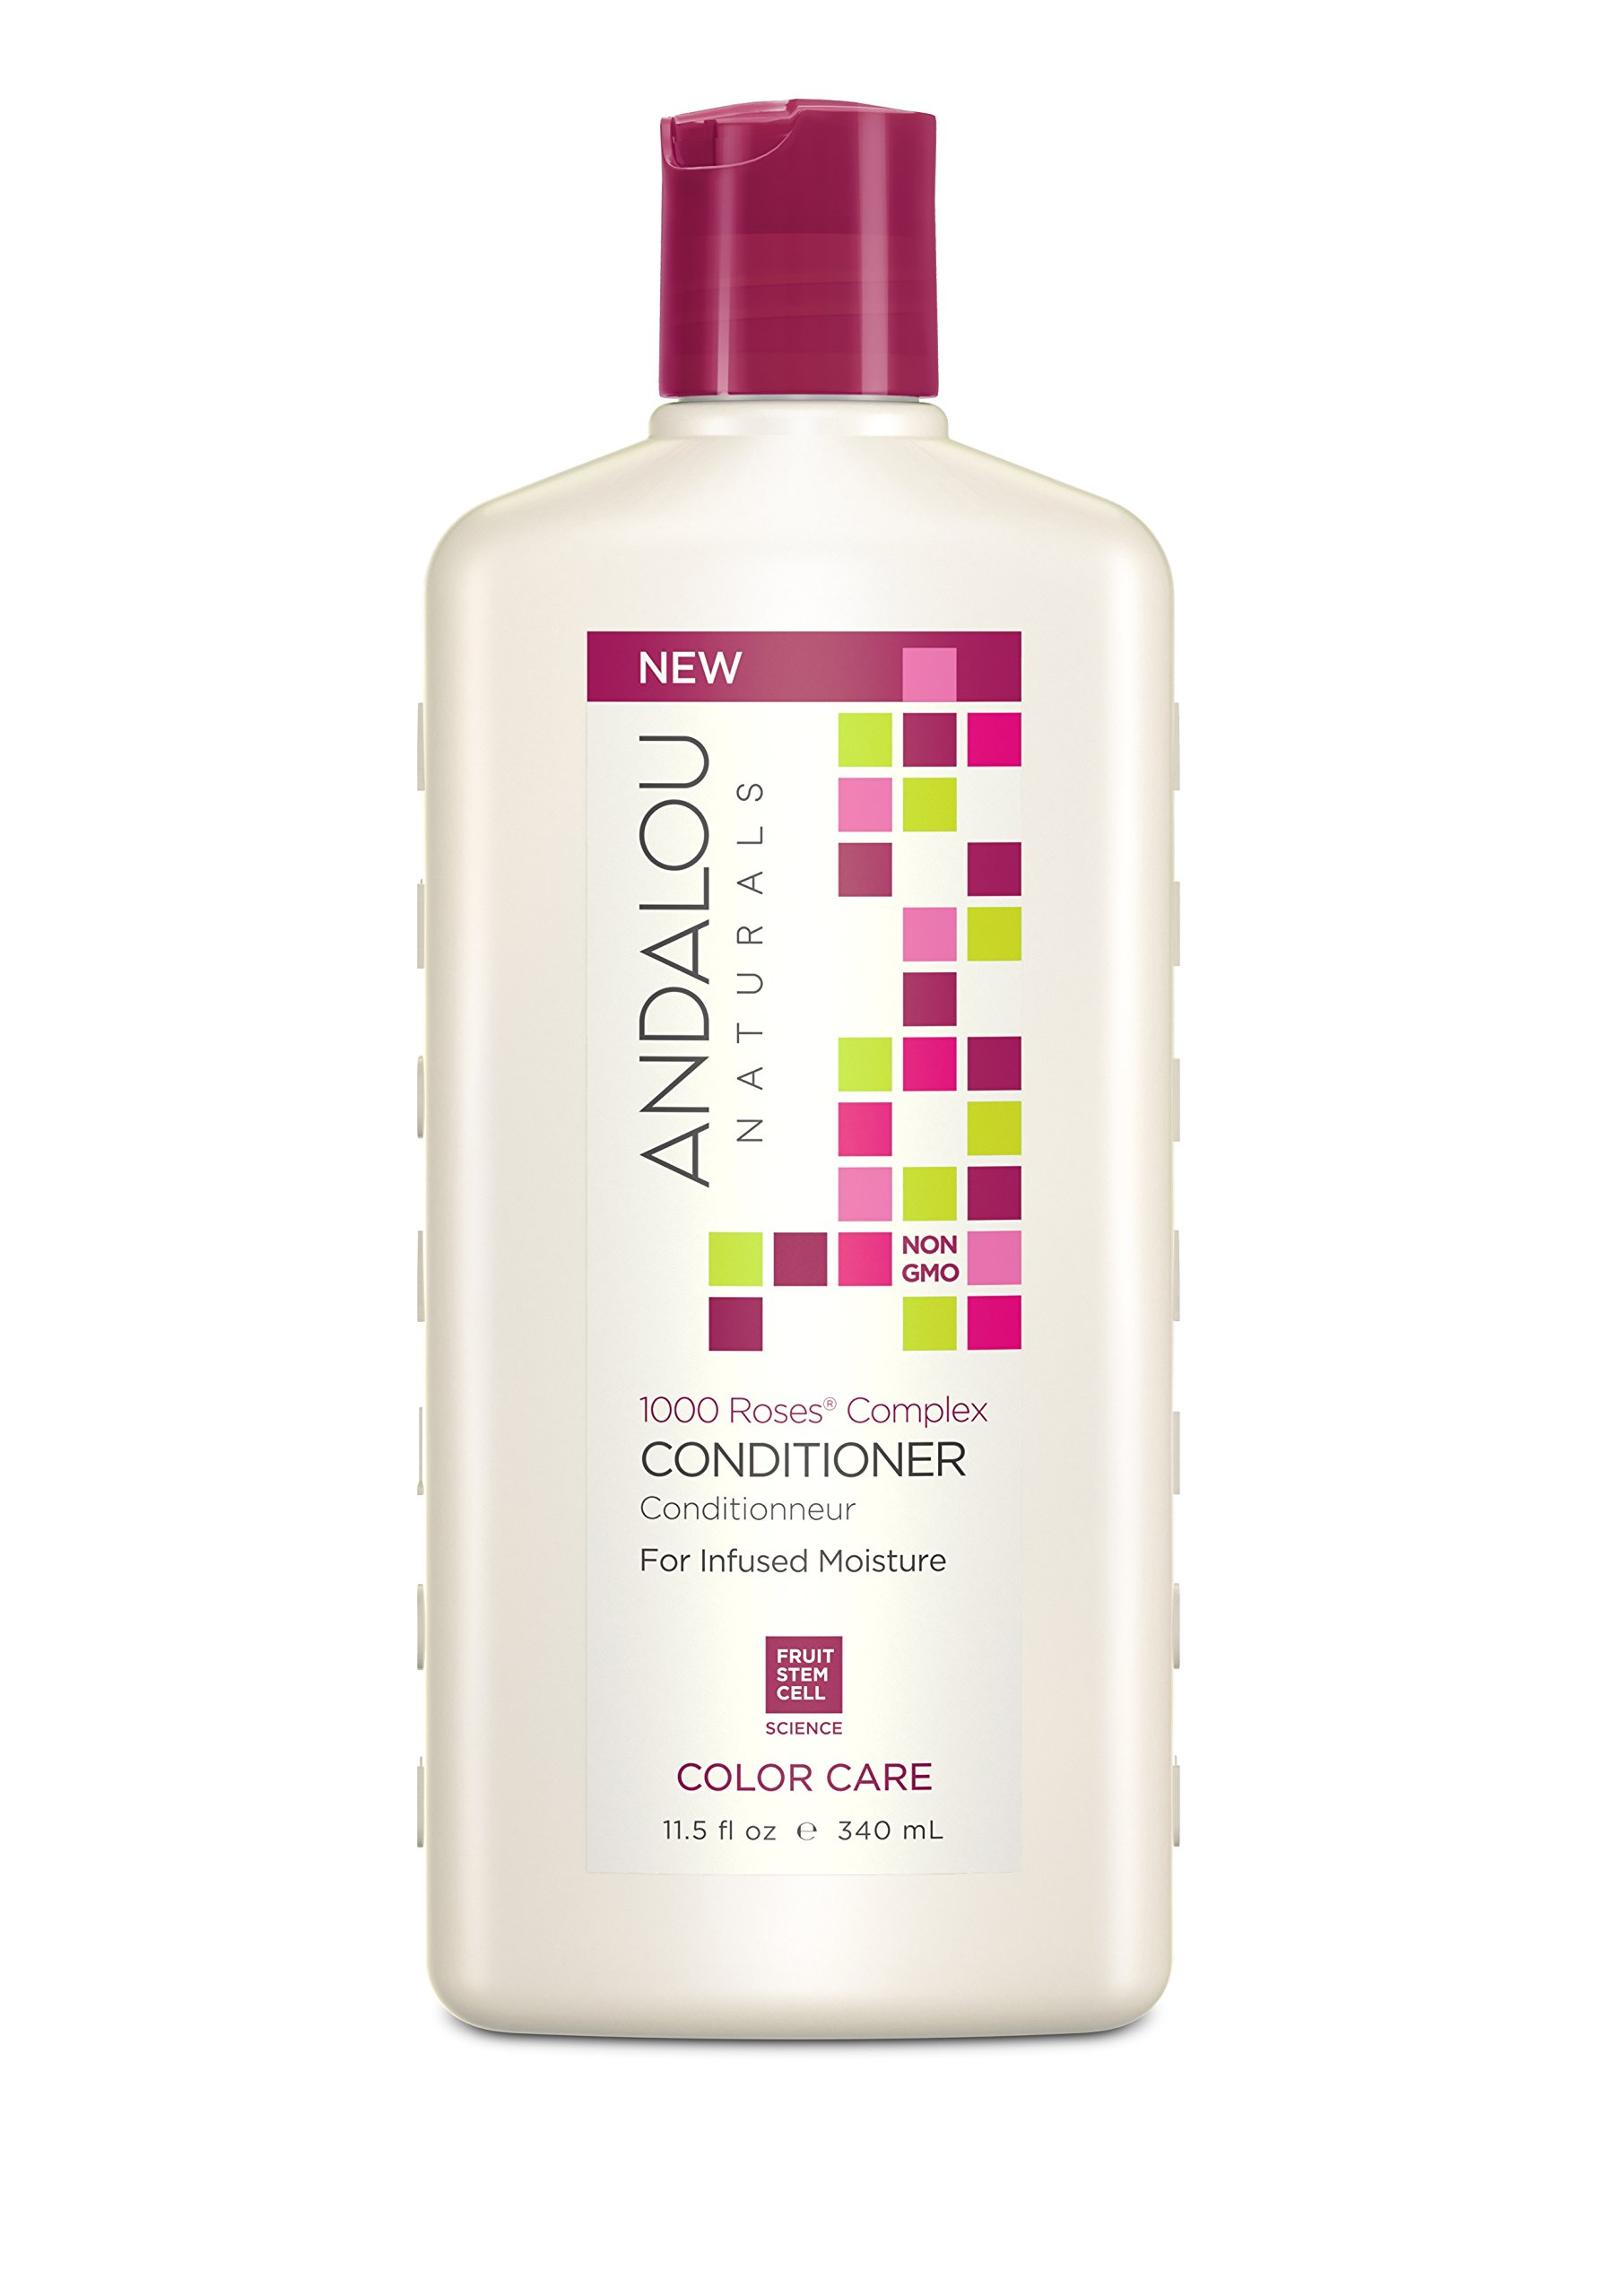 Andalou Naturals 1000 Roses Conditioner, 11.5 Ounce